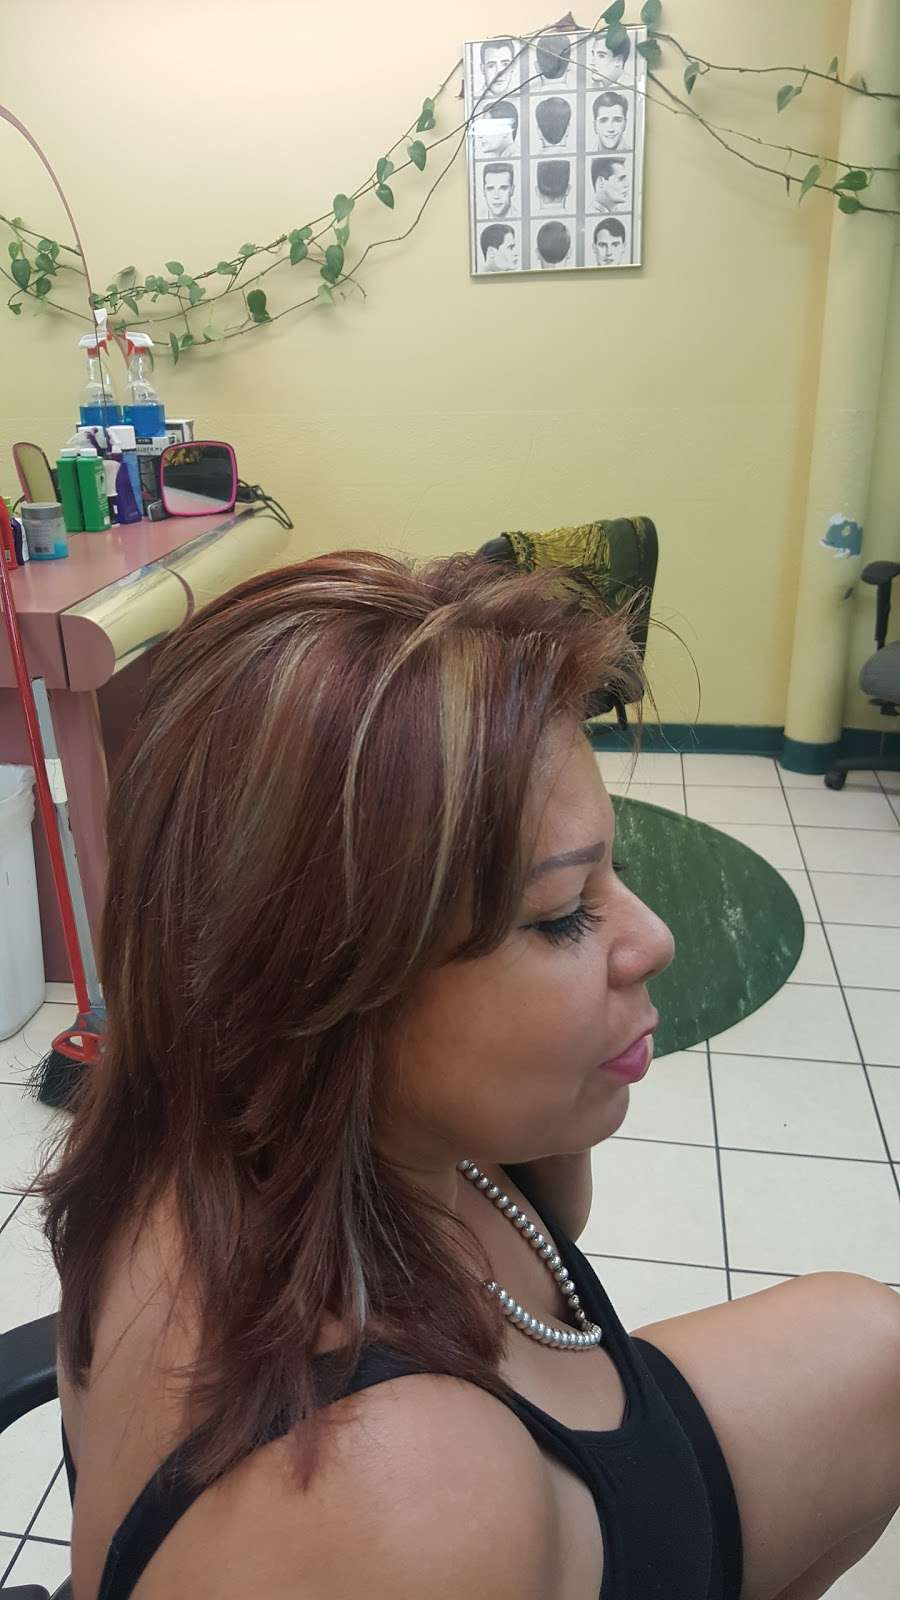 Yessenia Beauty Salon - hair care  | Photo 3 of 5 | Address: 1150 W Kiest Blvd # 400B, Dallas, TX 75224, USA | Phone: (214) 372-3669